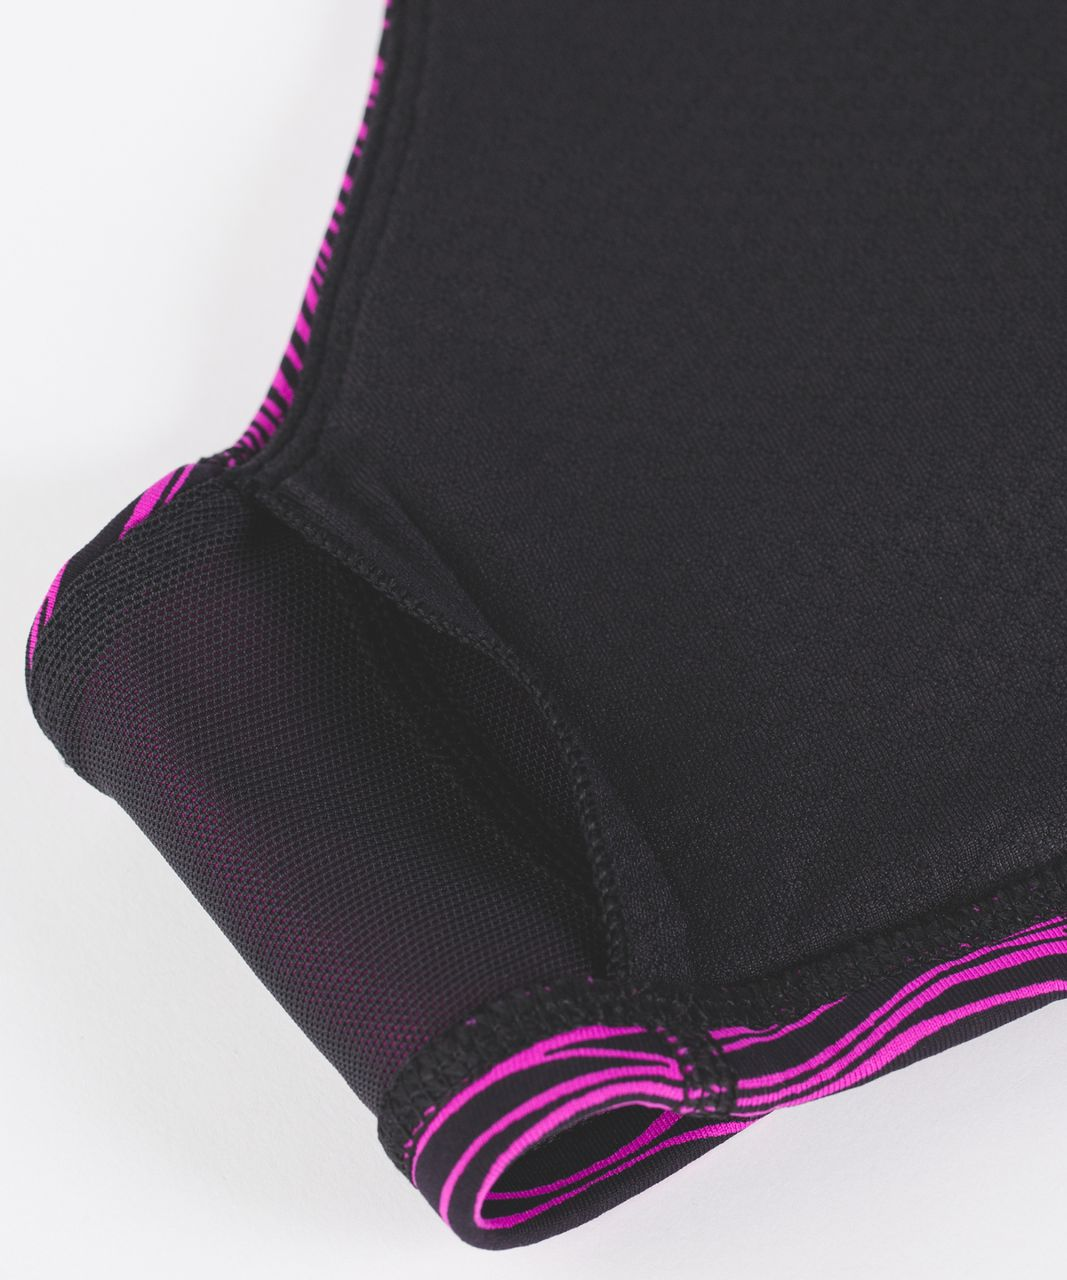 Lululemon Free To Be Bra - Life Lines Polar Pink Black